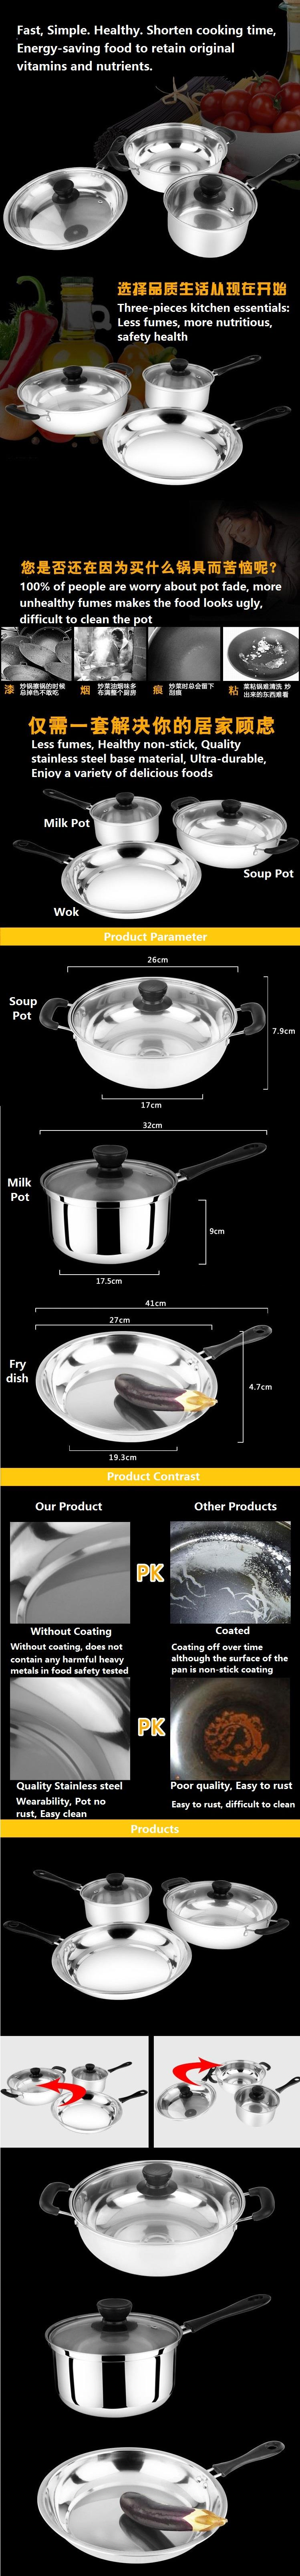 3-In-1 Stainless Steel Set Of Cookware